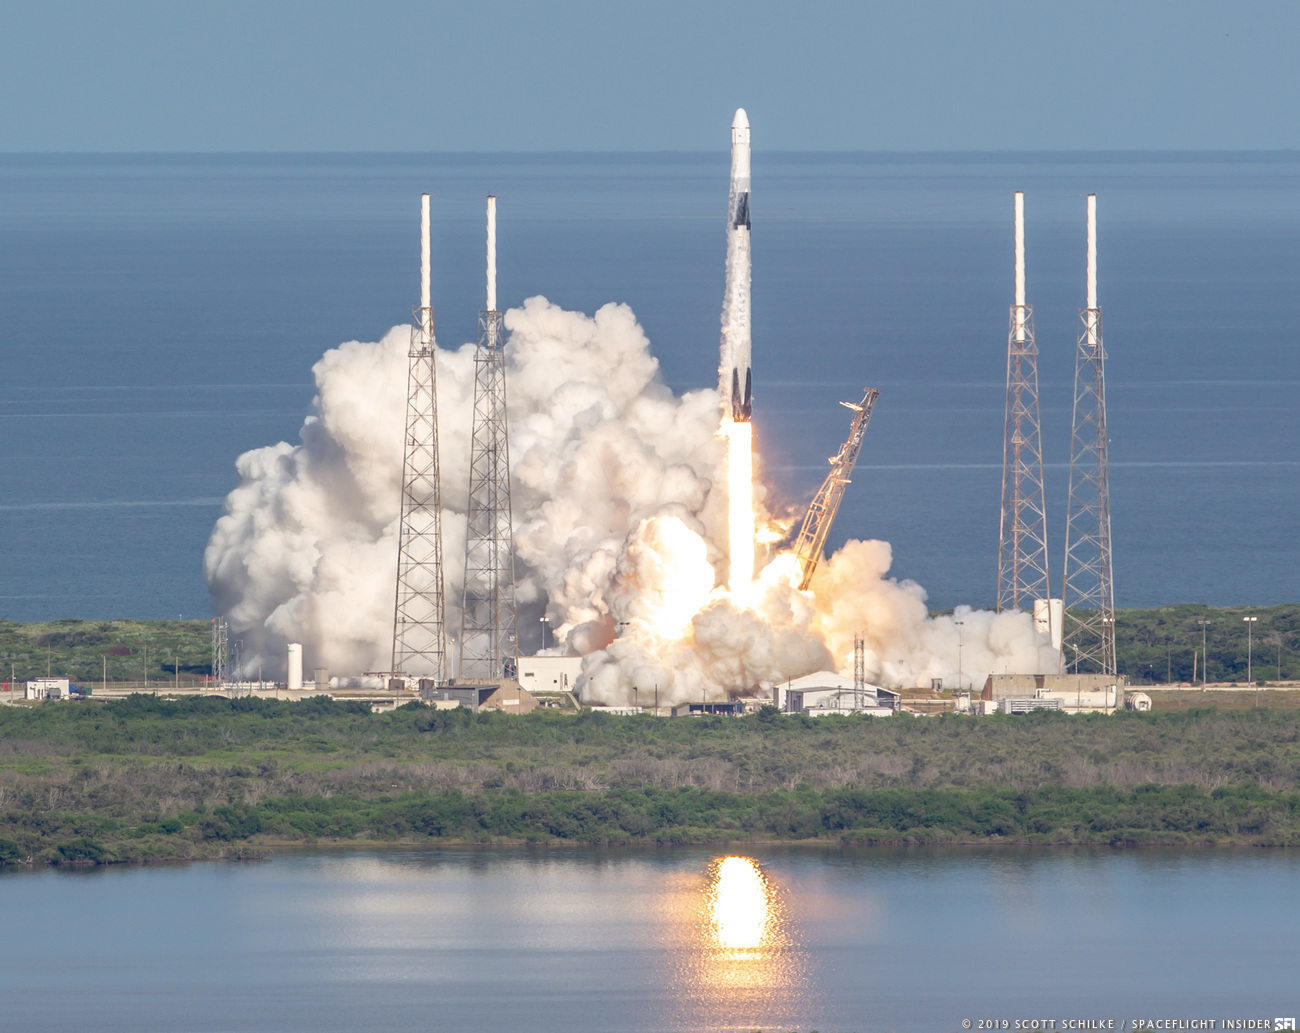 Liftoff of SpaceX's eighteenth cargo resupply mission to the International Space Station got underway at 6:01 p.m. EDT (22:01 GMT) on Thursday July 25, 2019 from Cape Canaveral Air Force Station's Space Launch Complex 40. Photo Credit: Scott Schilke / SpaceFlight Insider